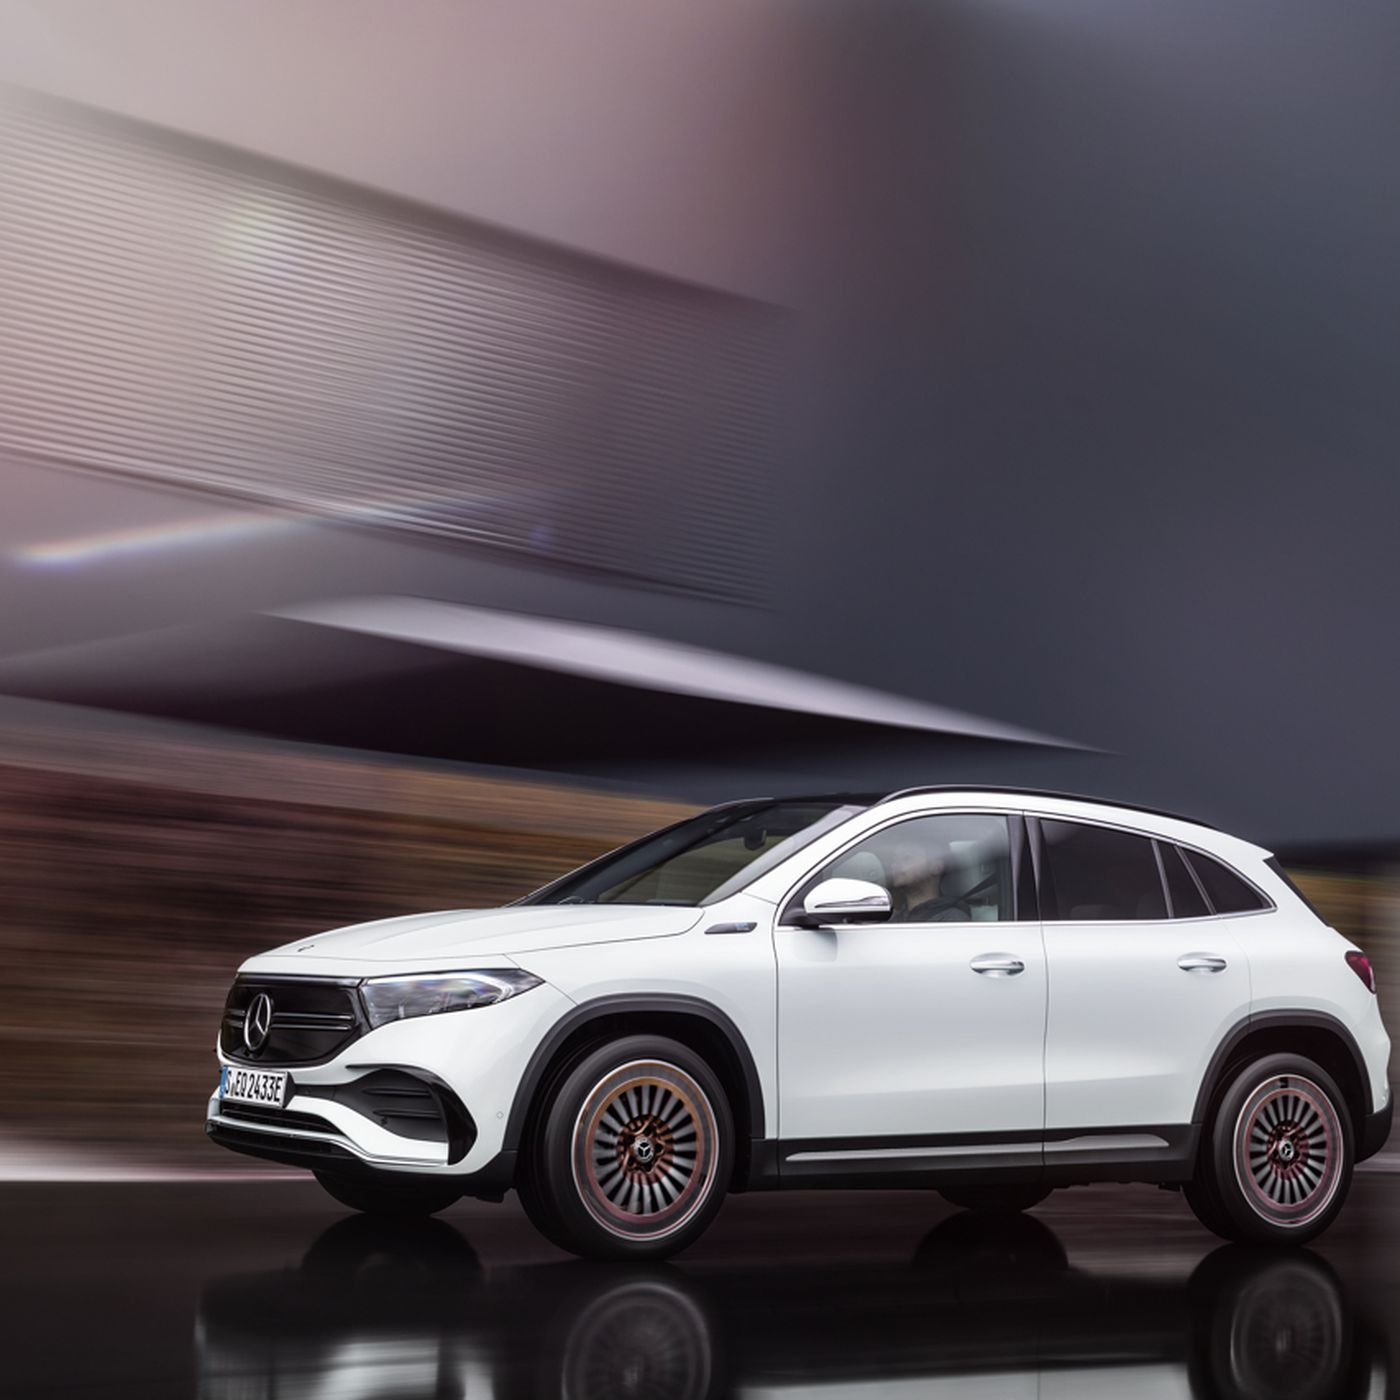 Mercedes Benz Unveils Eqa Electric Crossover With Less Than 300 Miles Of Range The Verge